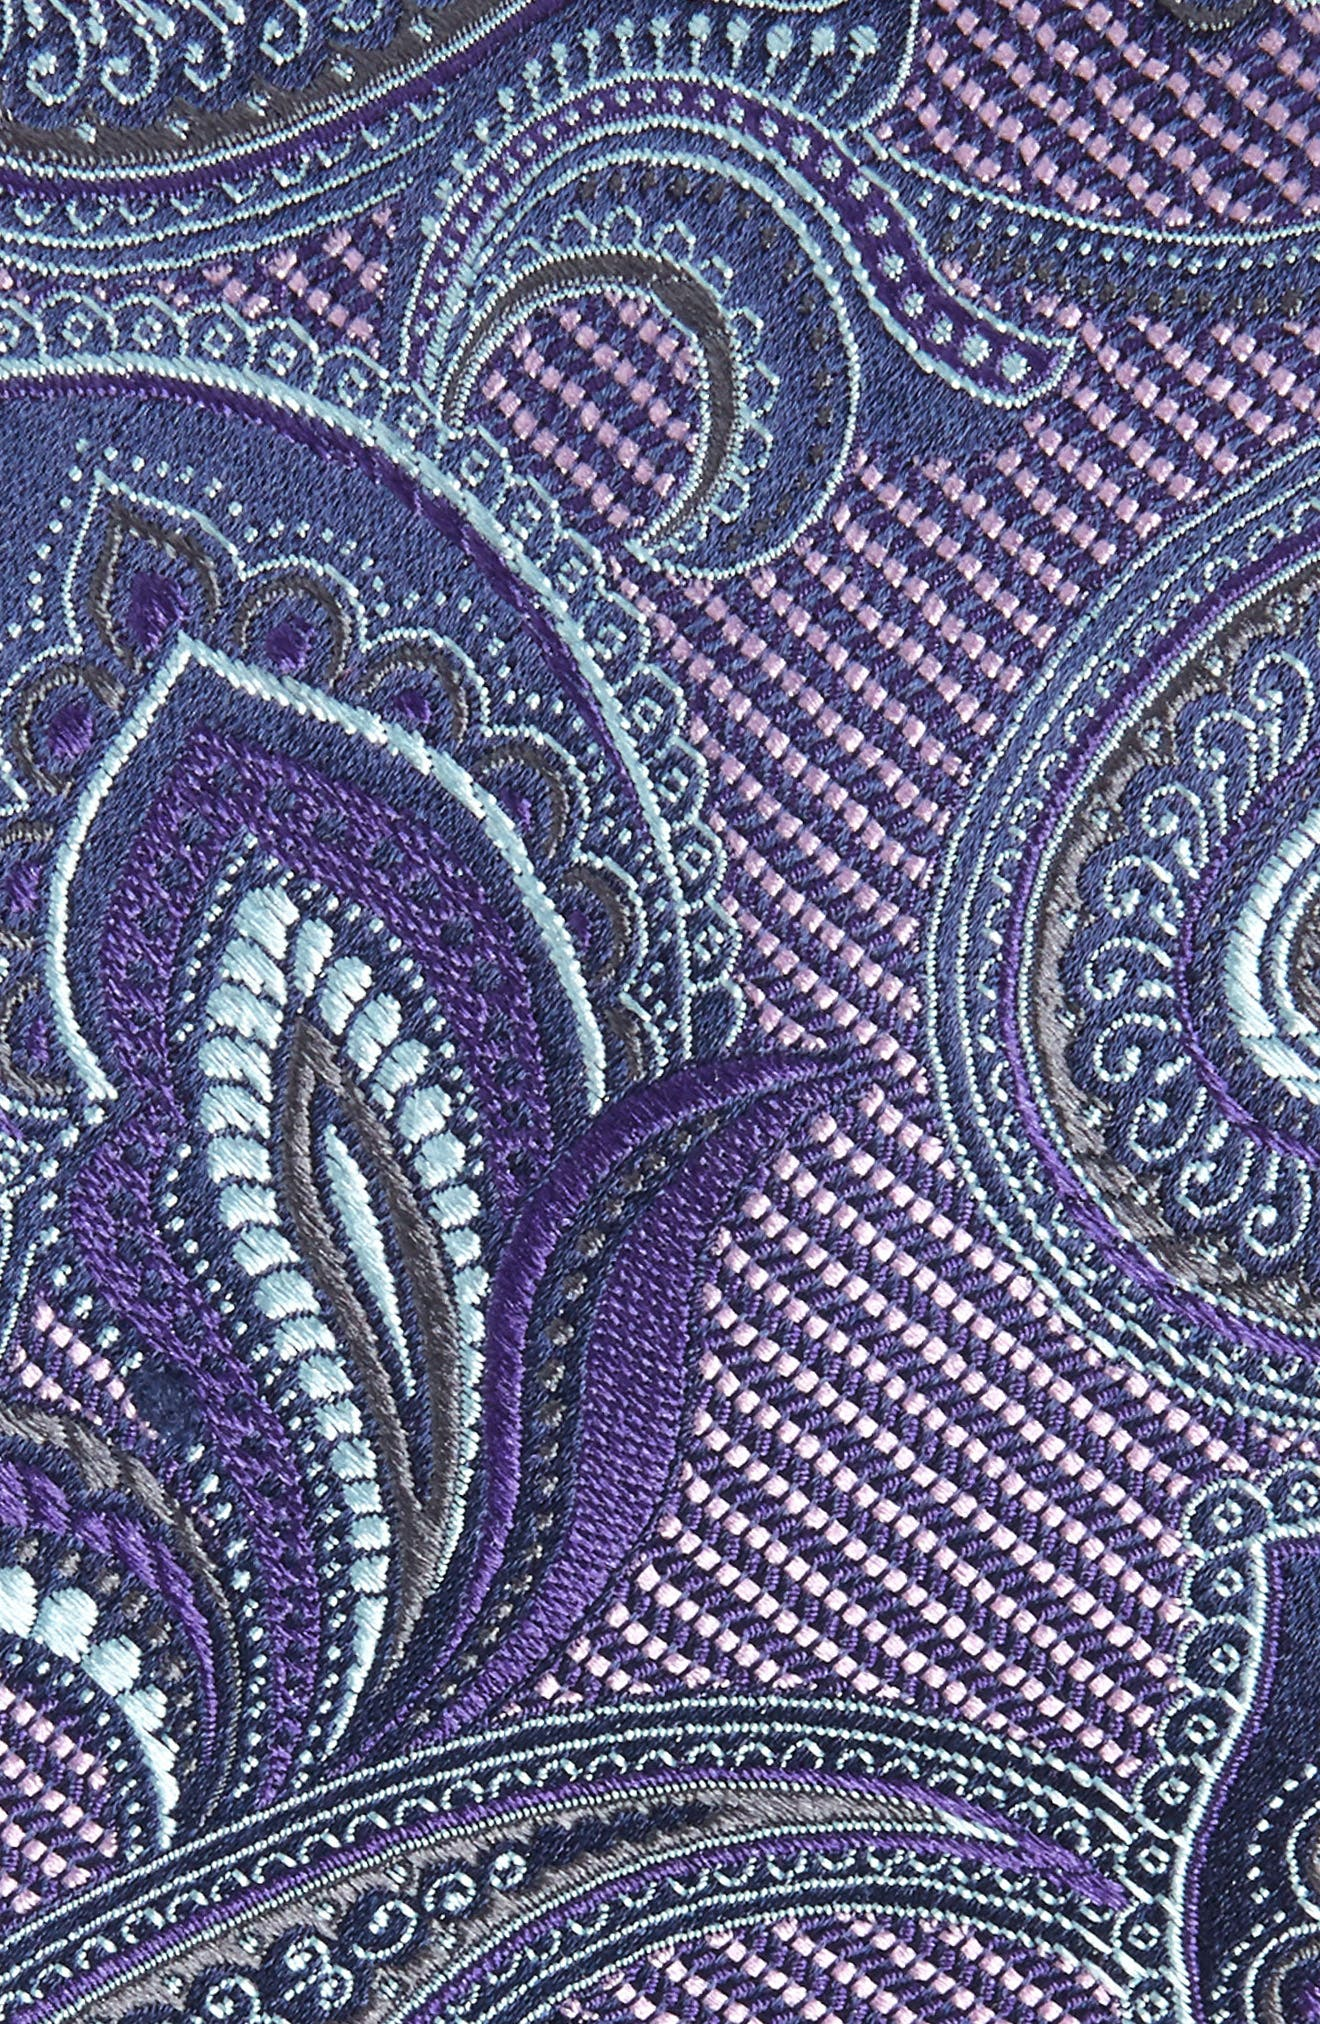 Palisades Paisley Silk Tie,                             Alternate thumbnail 2, color,                             515